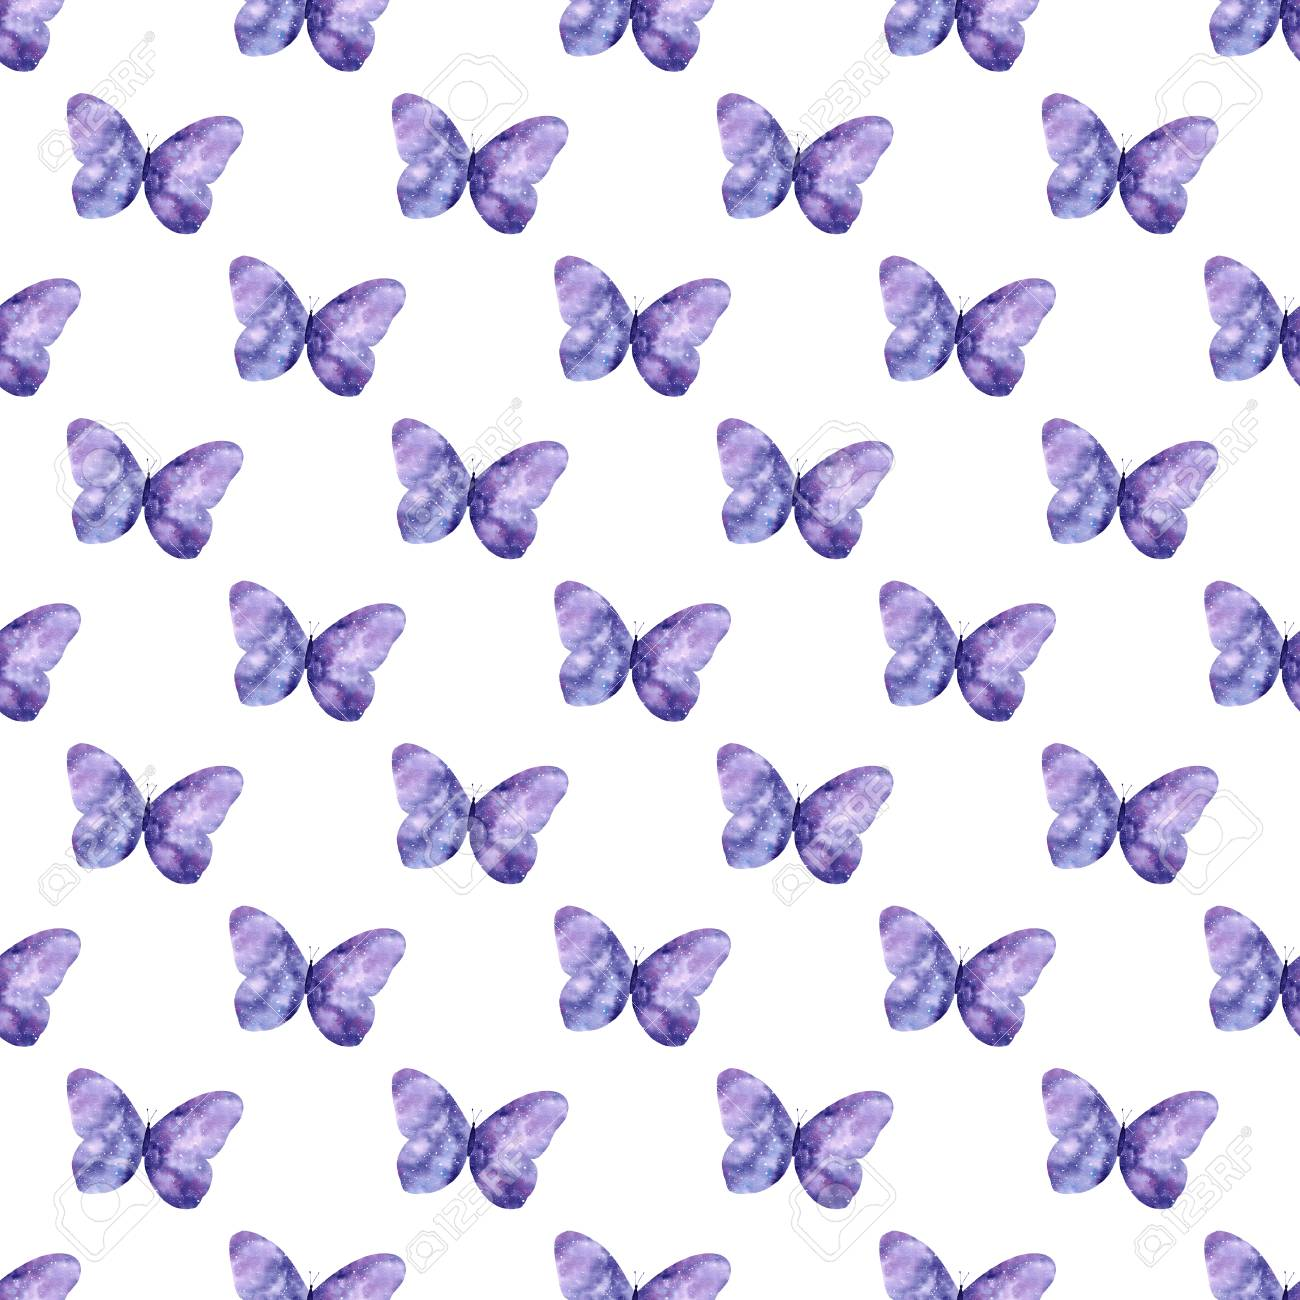 118994479 watercolor seamless pattern with bright galaxy butterflies cute decorative background wallpaper for